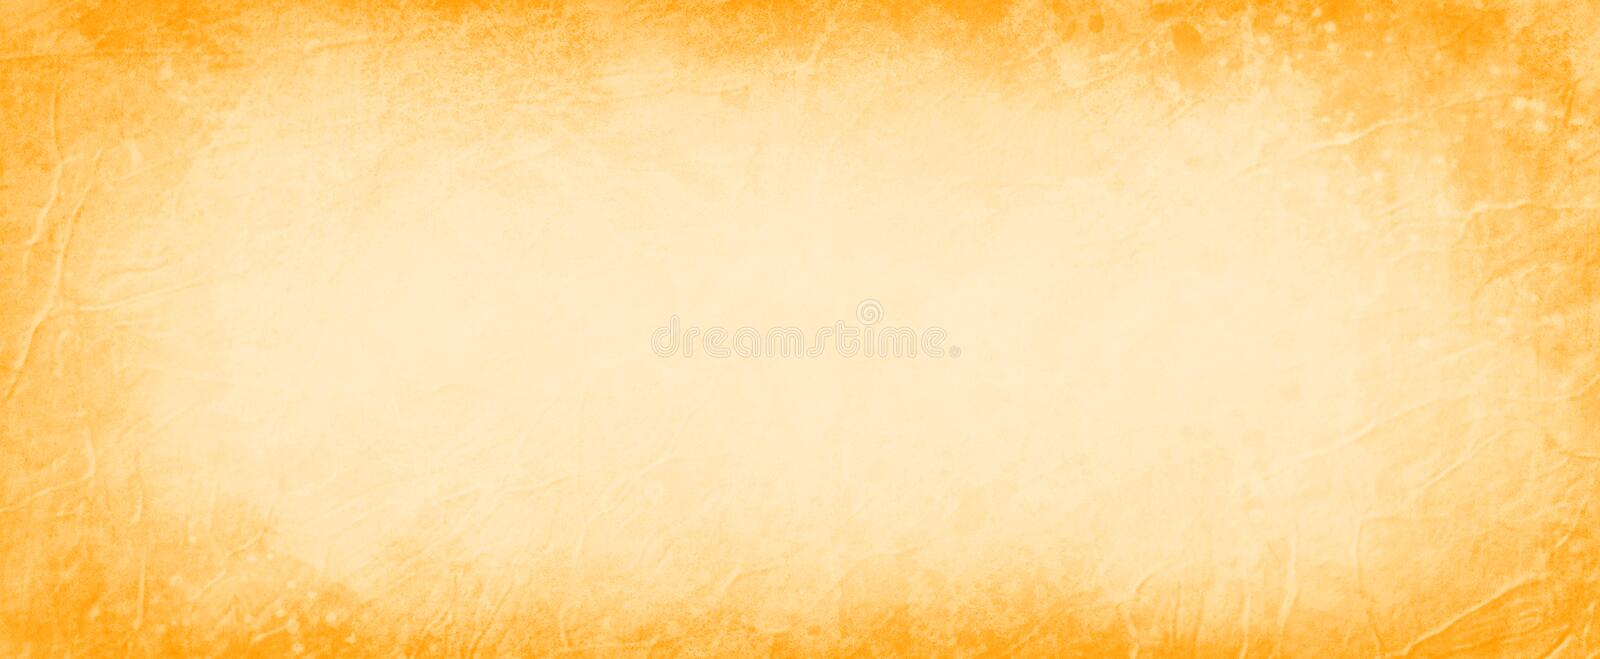 Beige background with bright orange border, abstract vintage background with grunge texture pattern and warm autumn or halloween c stock images